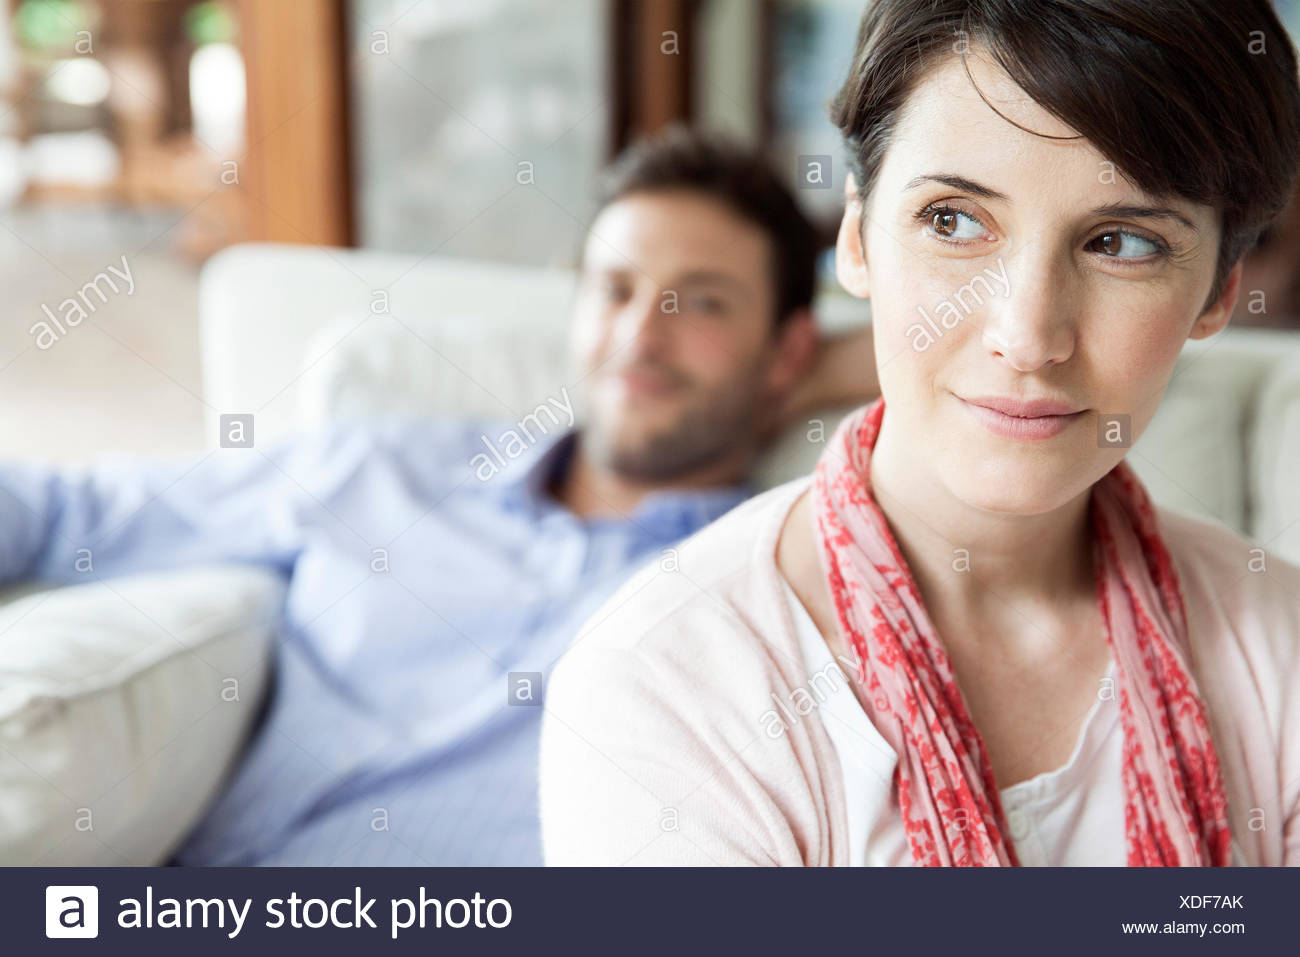 Woman looking away dreamily, man relaxing in background - Stock Image